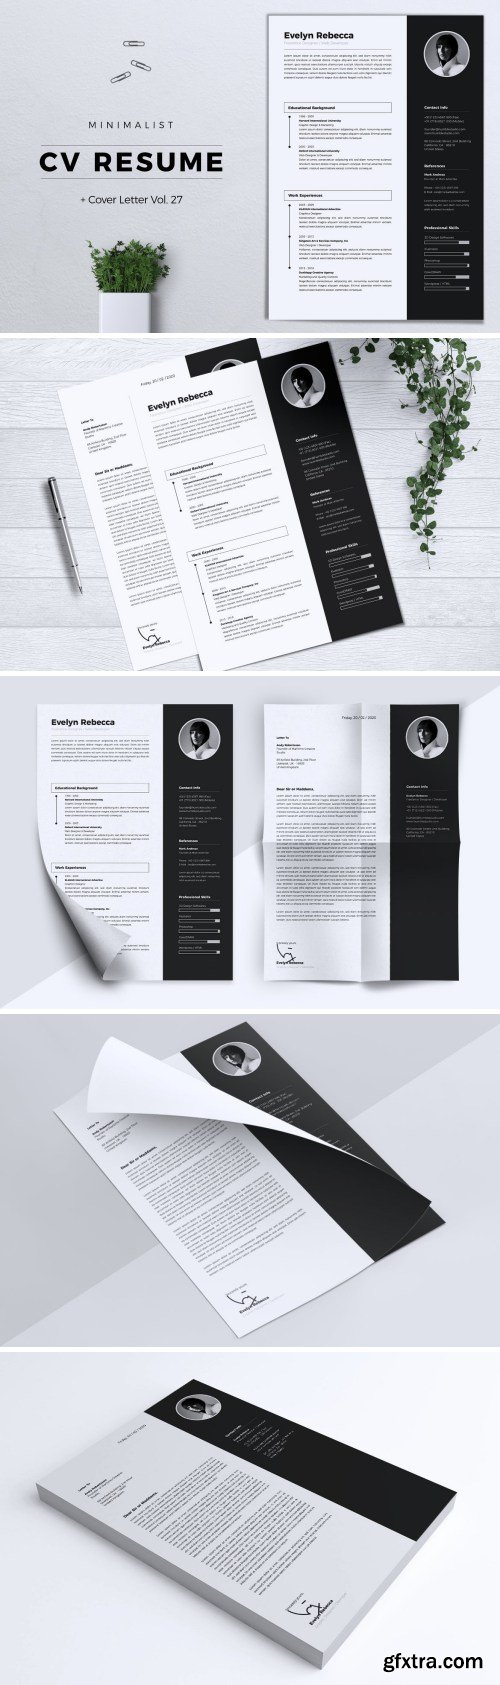 Minimalist CV Resume Vol. 27